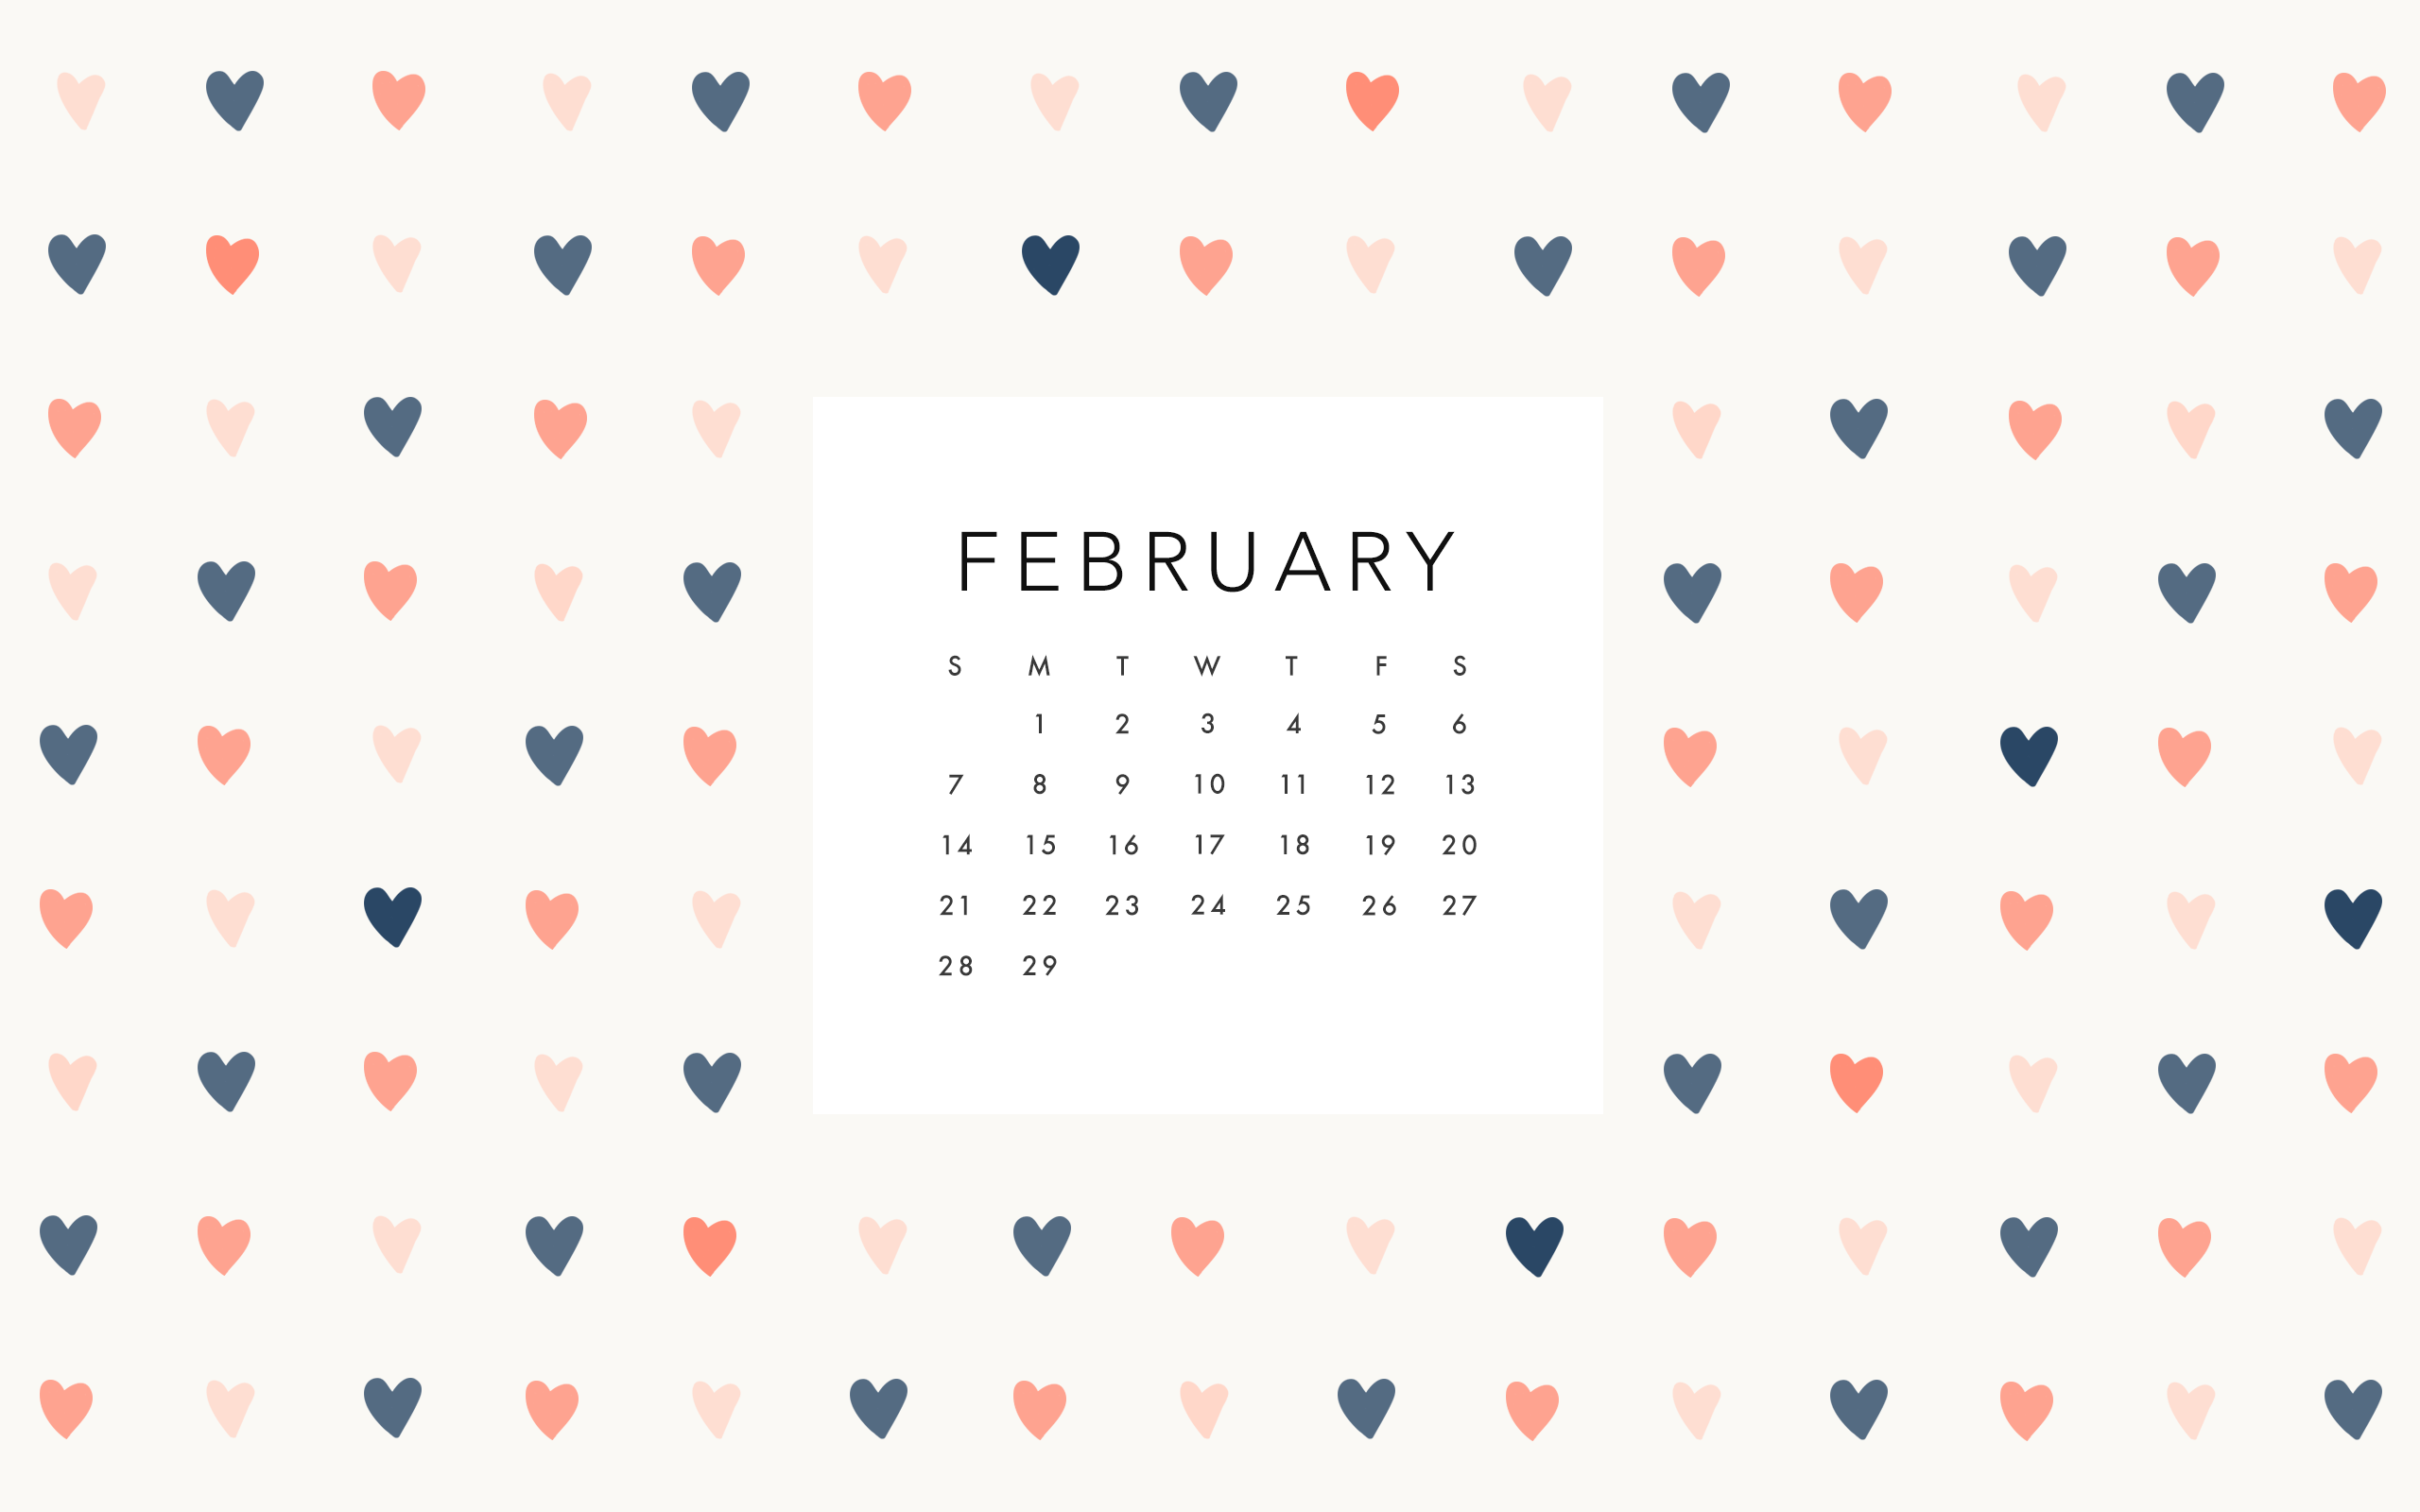 February Calendar Wallpaper Phone : Desktop wallpapers calendar february wallpaper cave